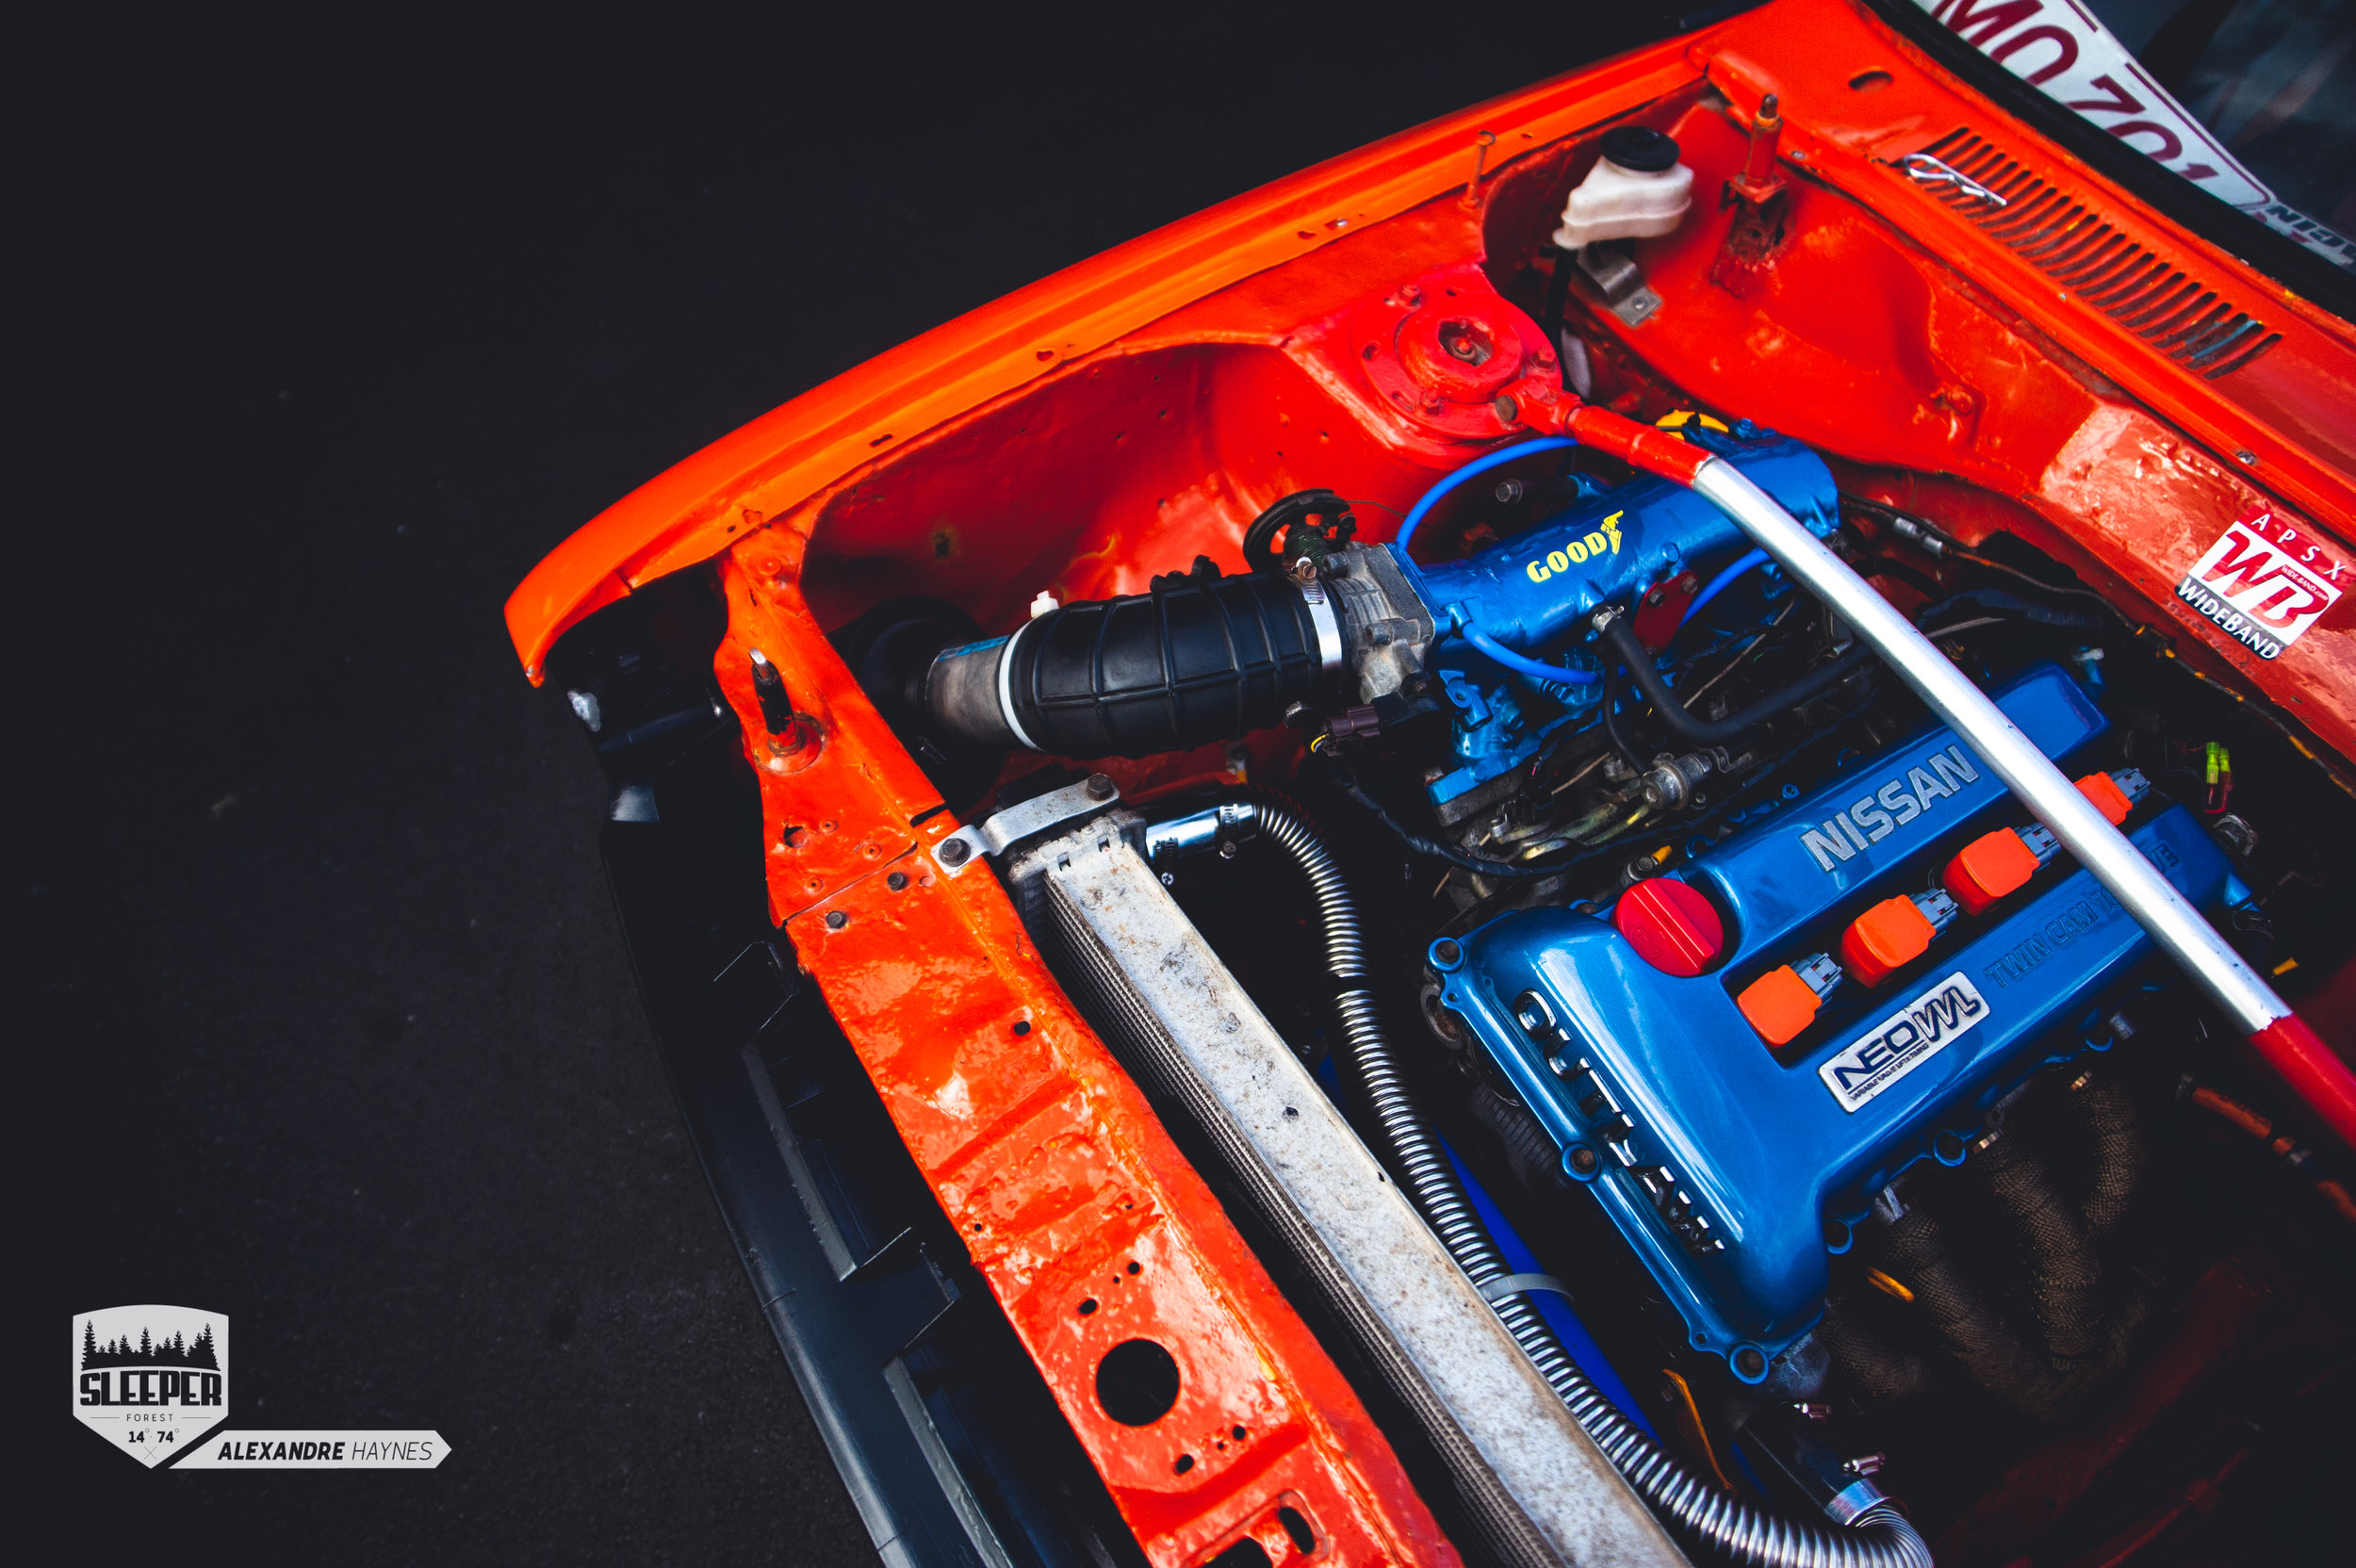 Datsun 120Y with an sr20